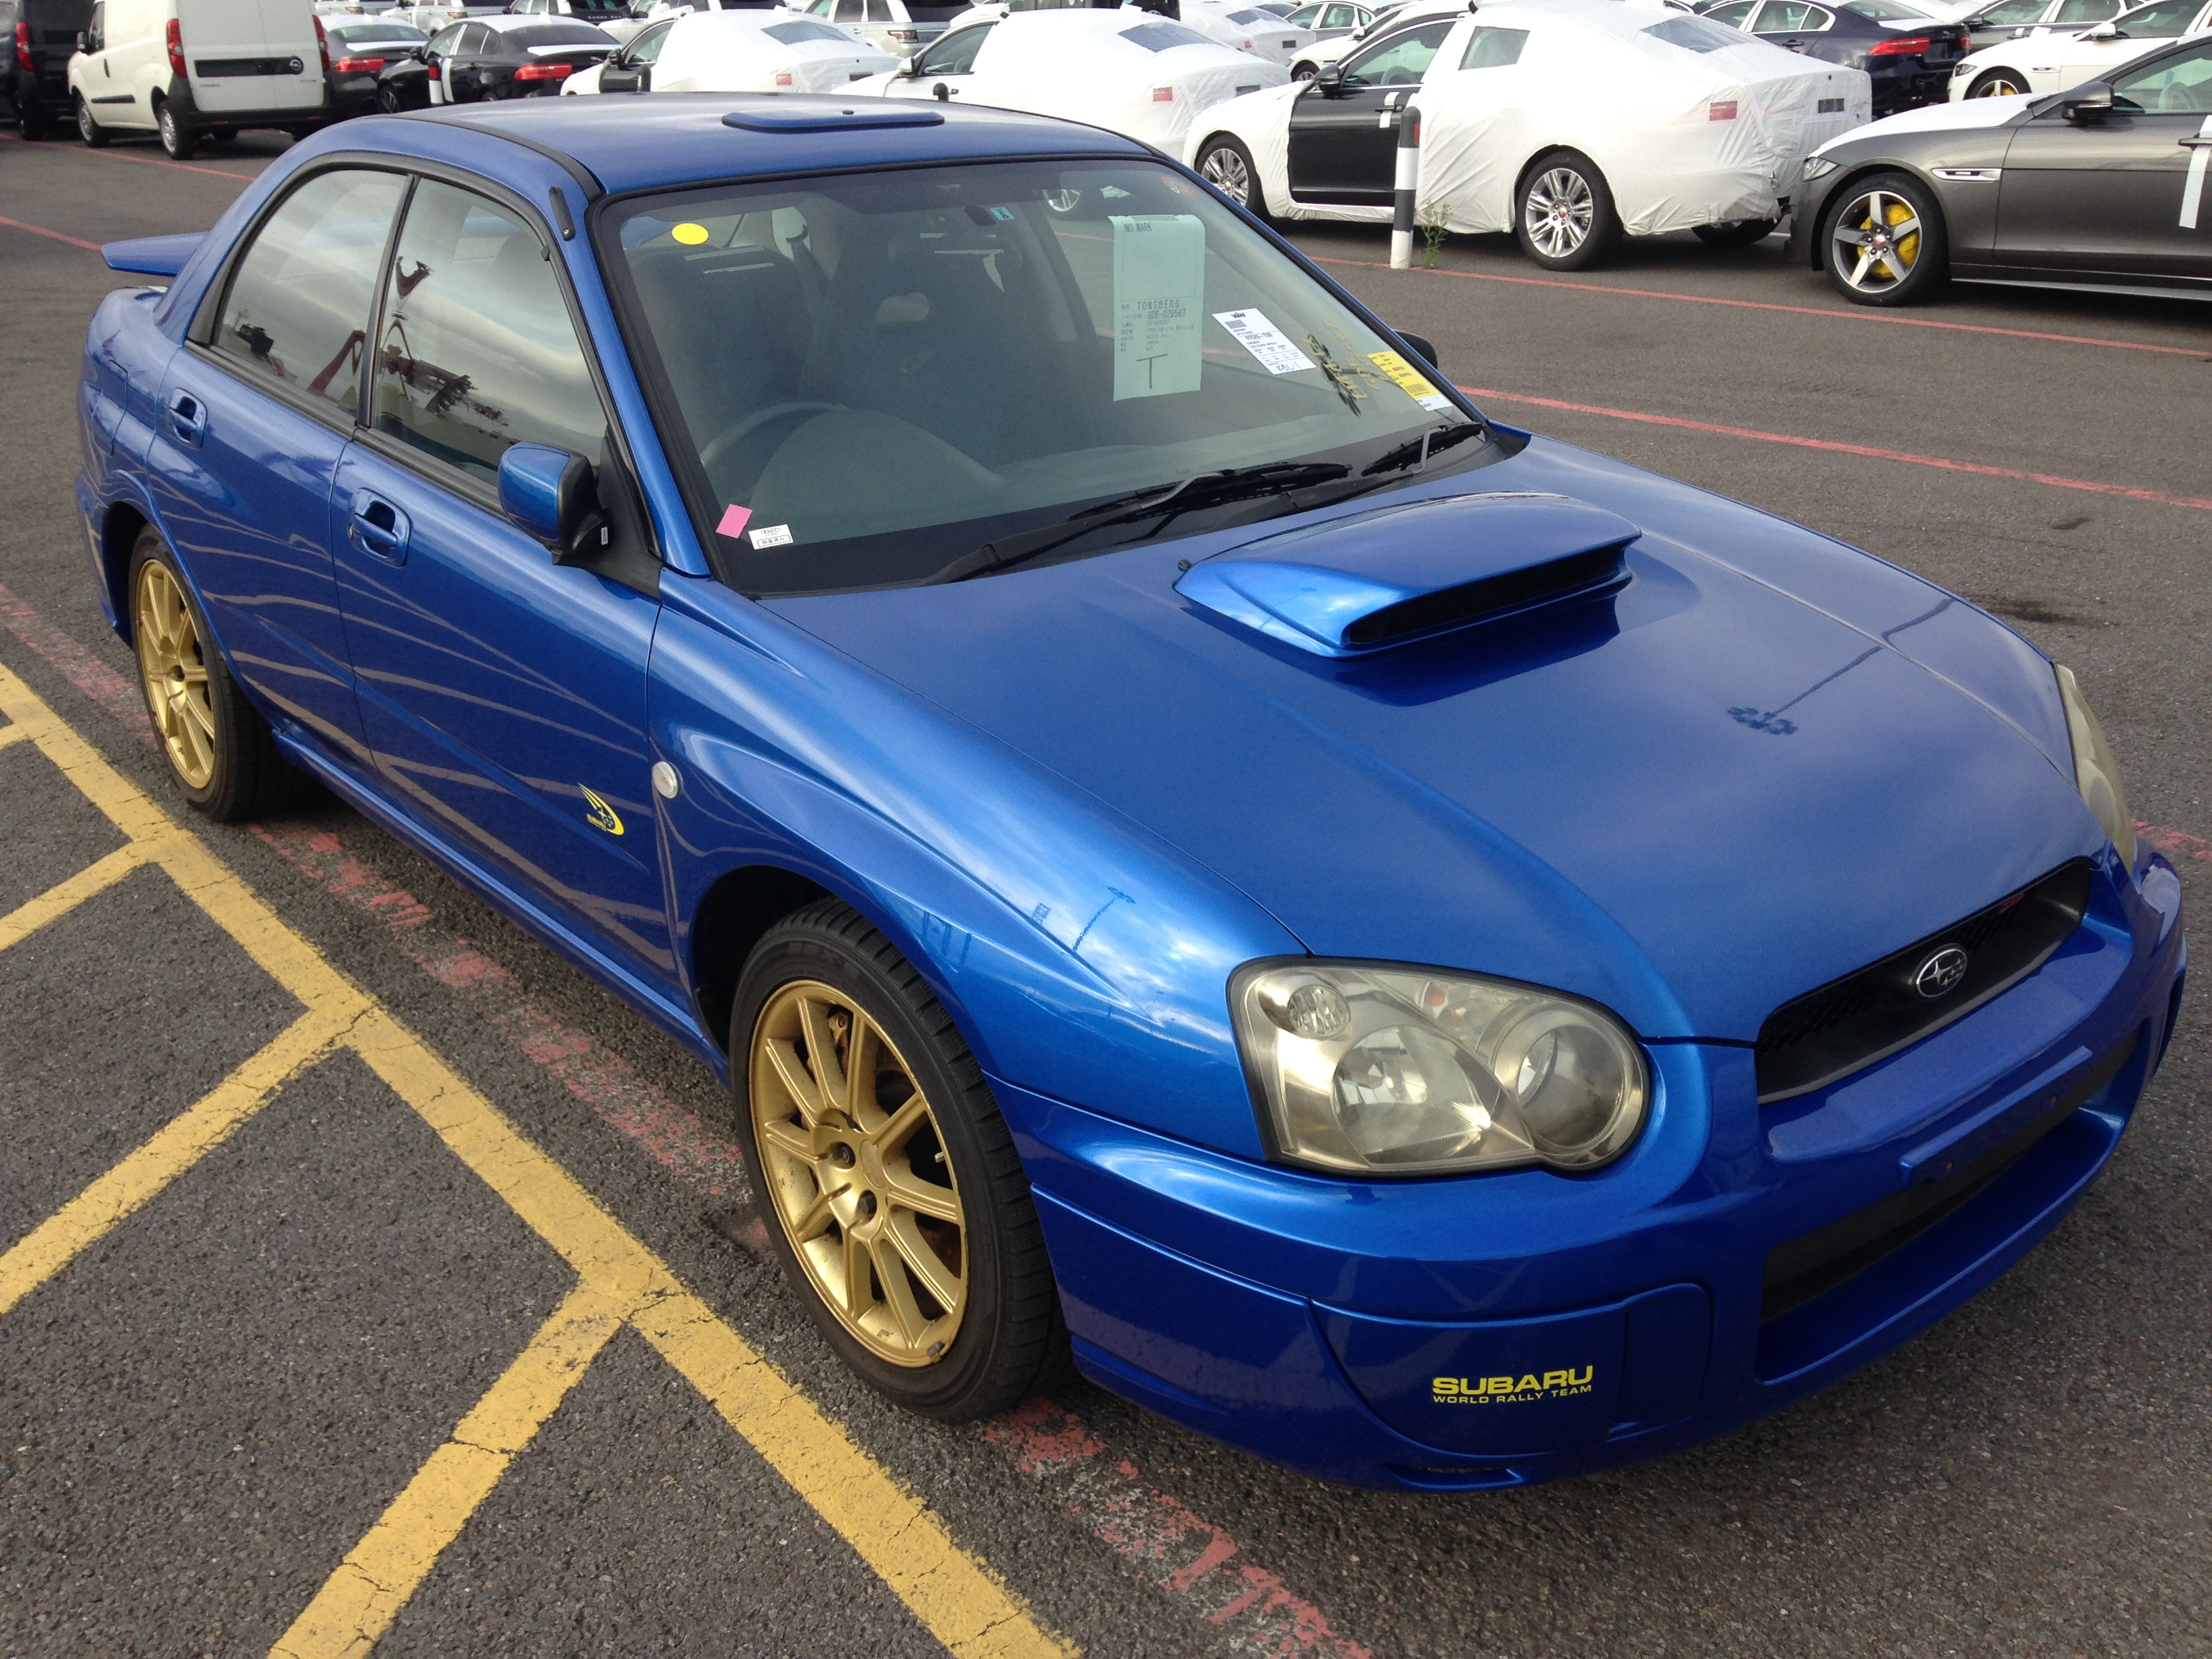 Subaru Impreza Sti Spec C WR Limited – For Sale